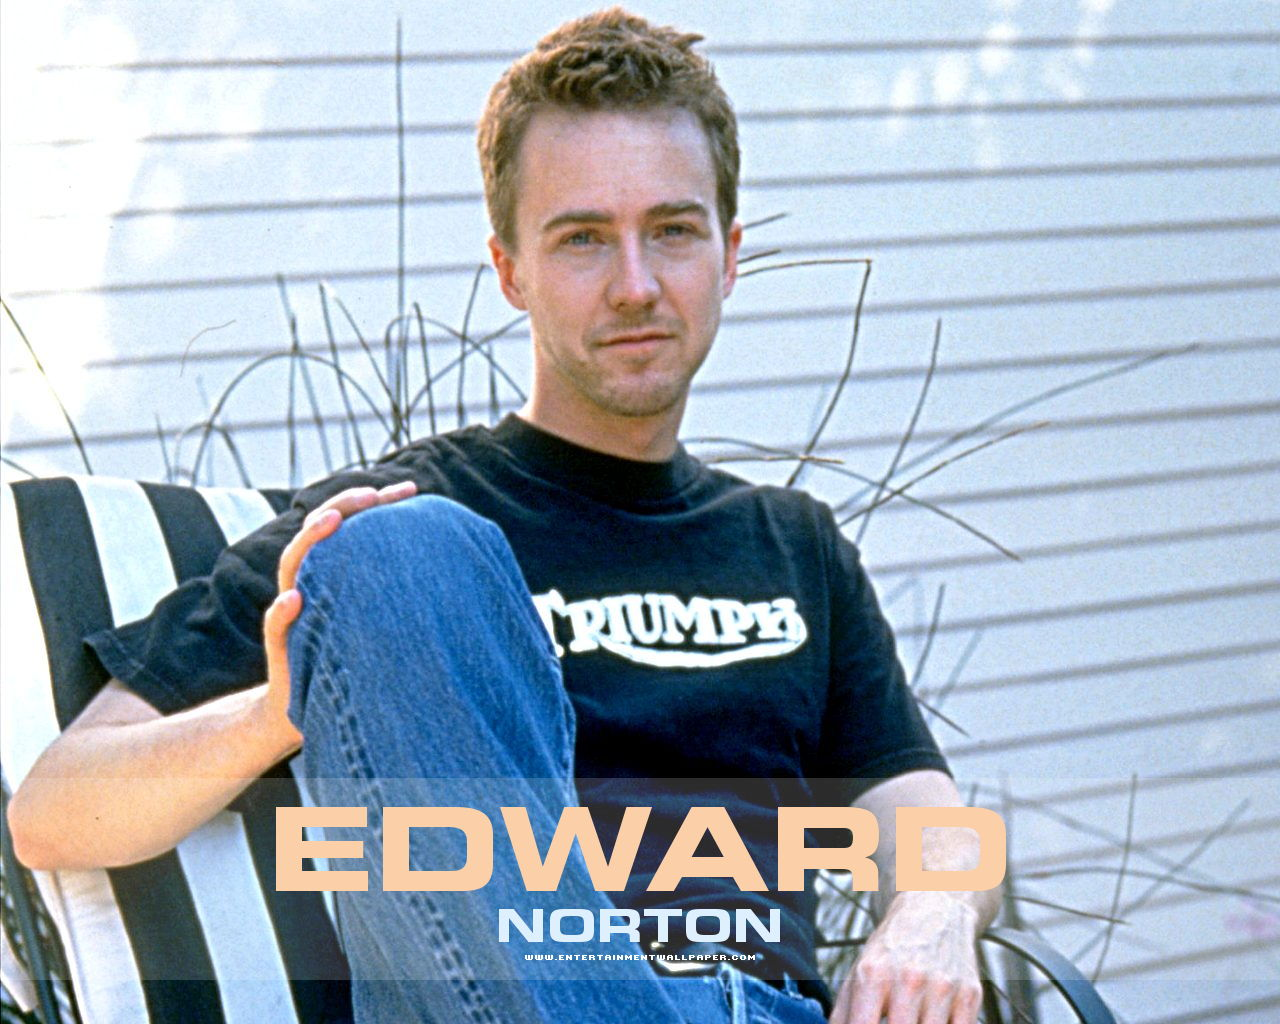 Edward Norton by JaCkY506